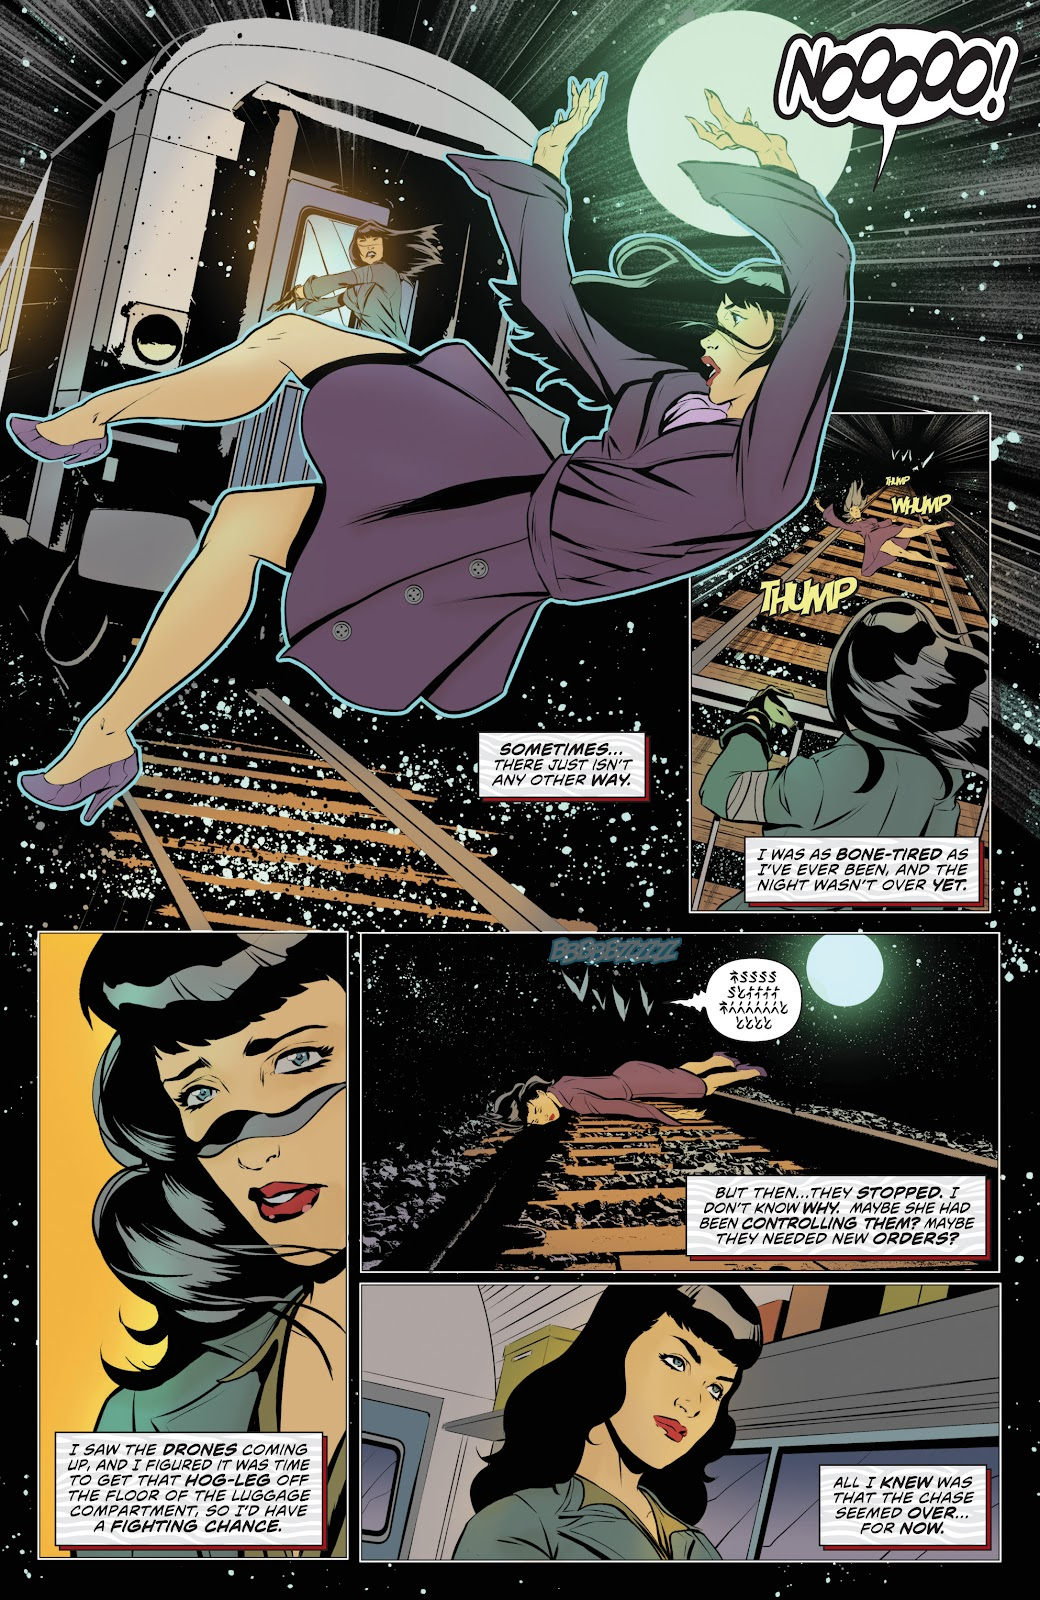 Read online Bettie Page: Unbound comic -  Issue #8 - 24